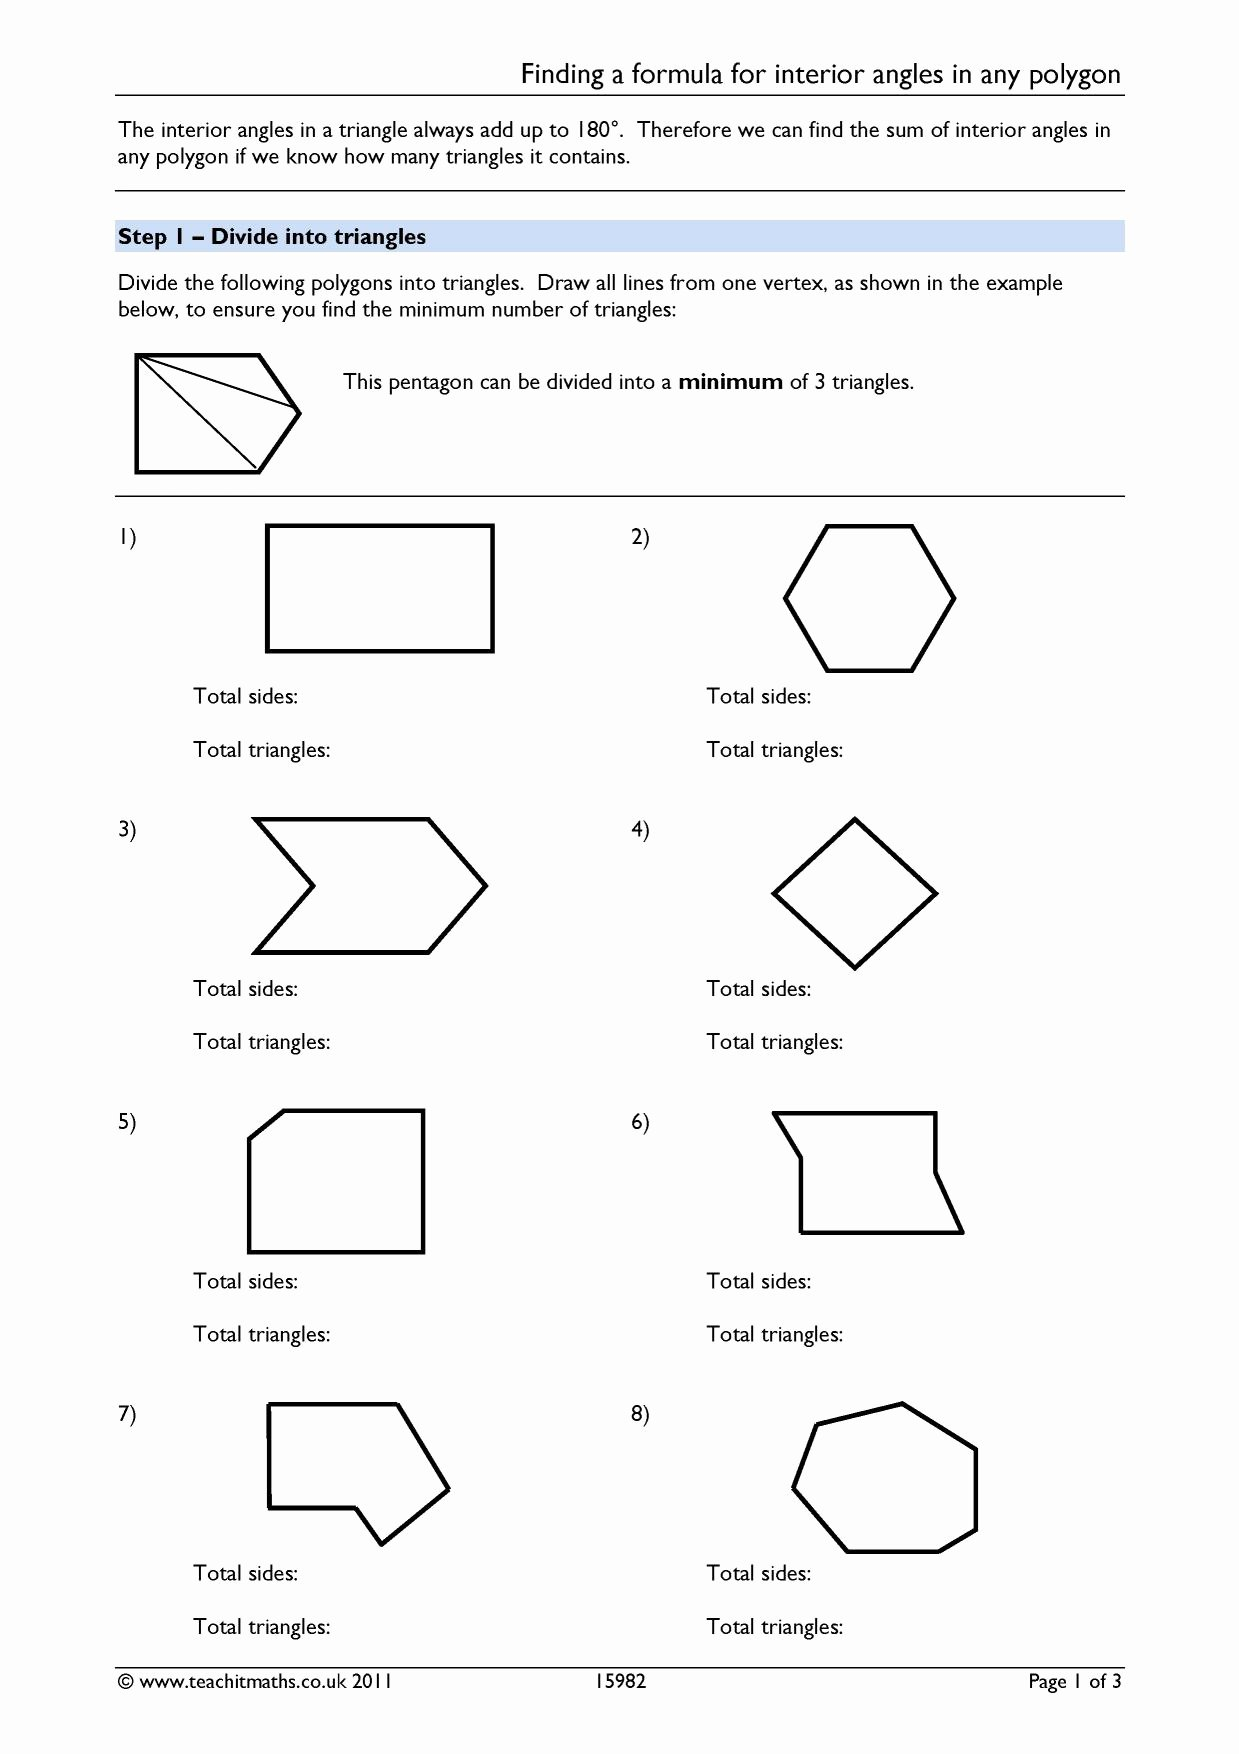 Polygon and Angles Worksheet Elegant Worksheet Interior Angles A Polygon Worksheet Grass